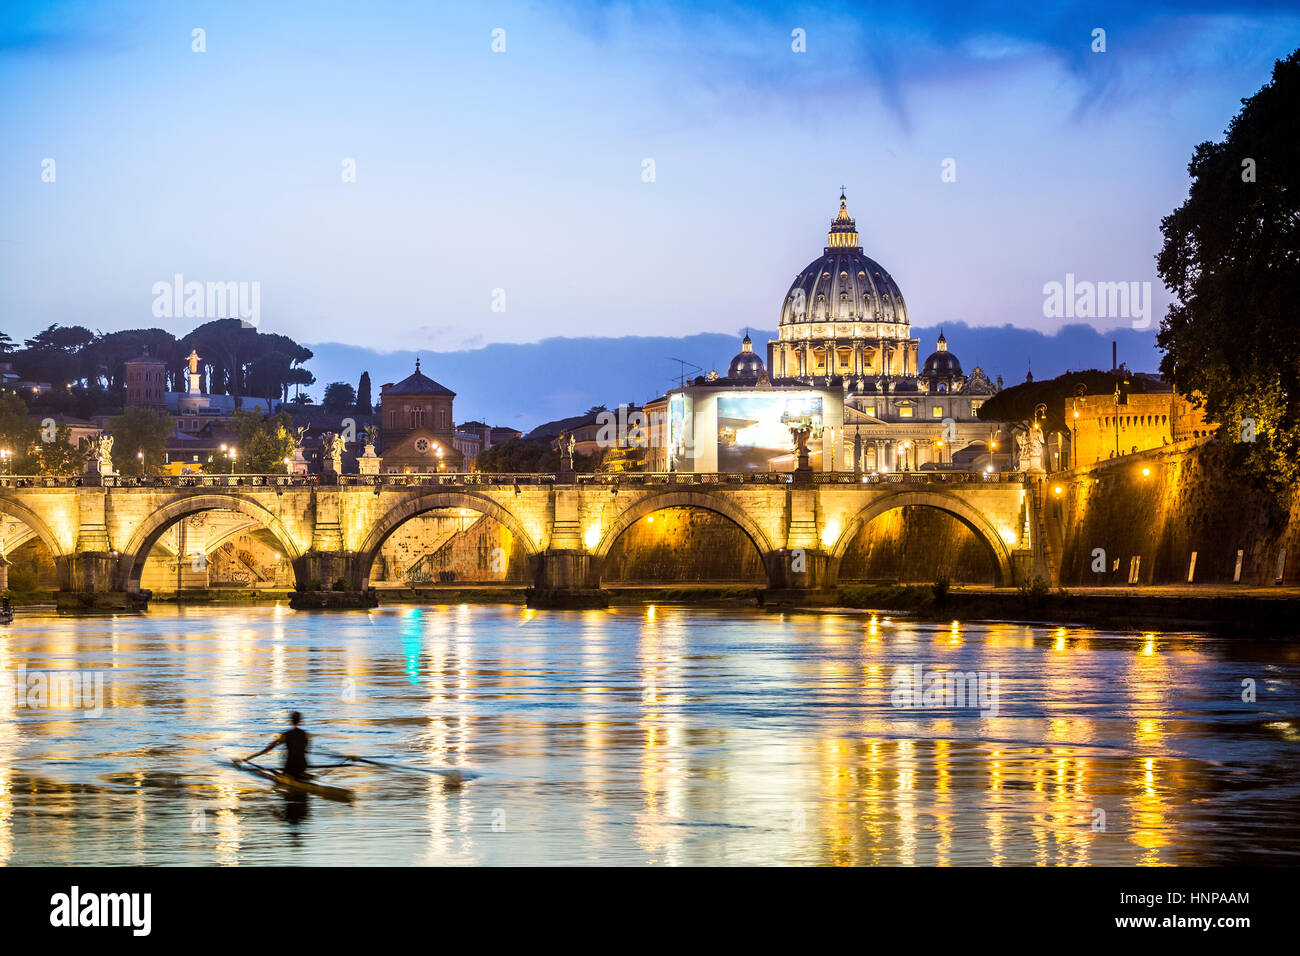 Saint Peter's Basilica with bridge over Tiber, dusk, Vatican City, Rome, Italy - Stock Image